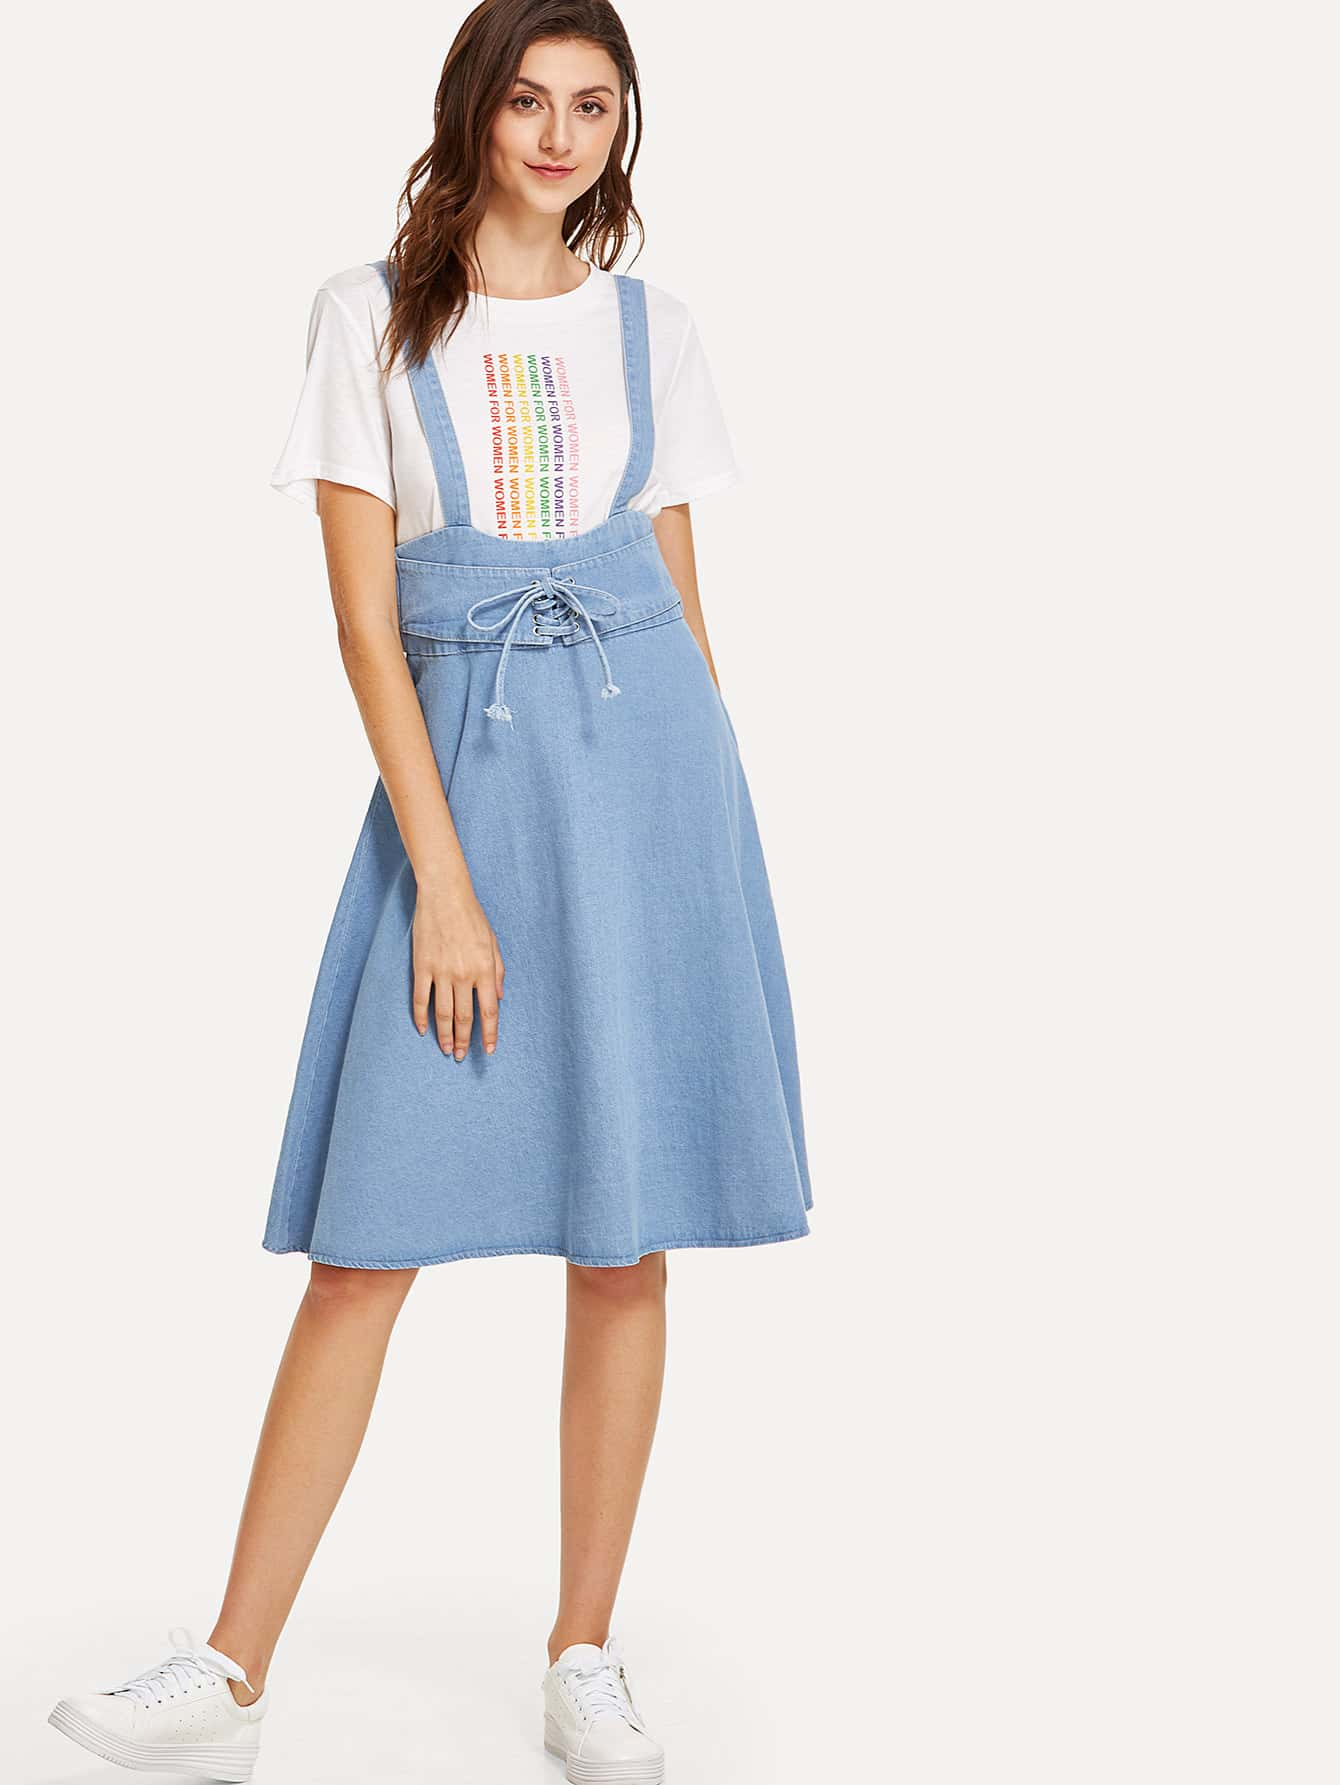 Lace Up Overall Denim Dress overall yumi overall